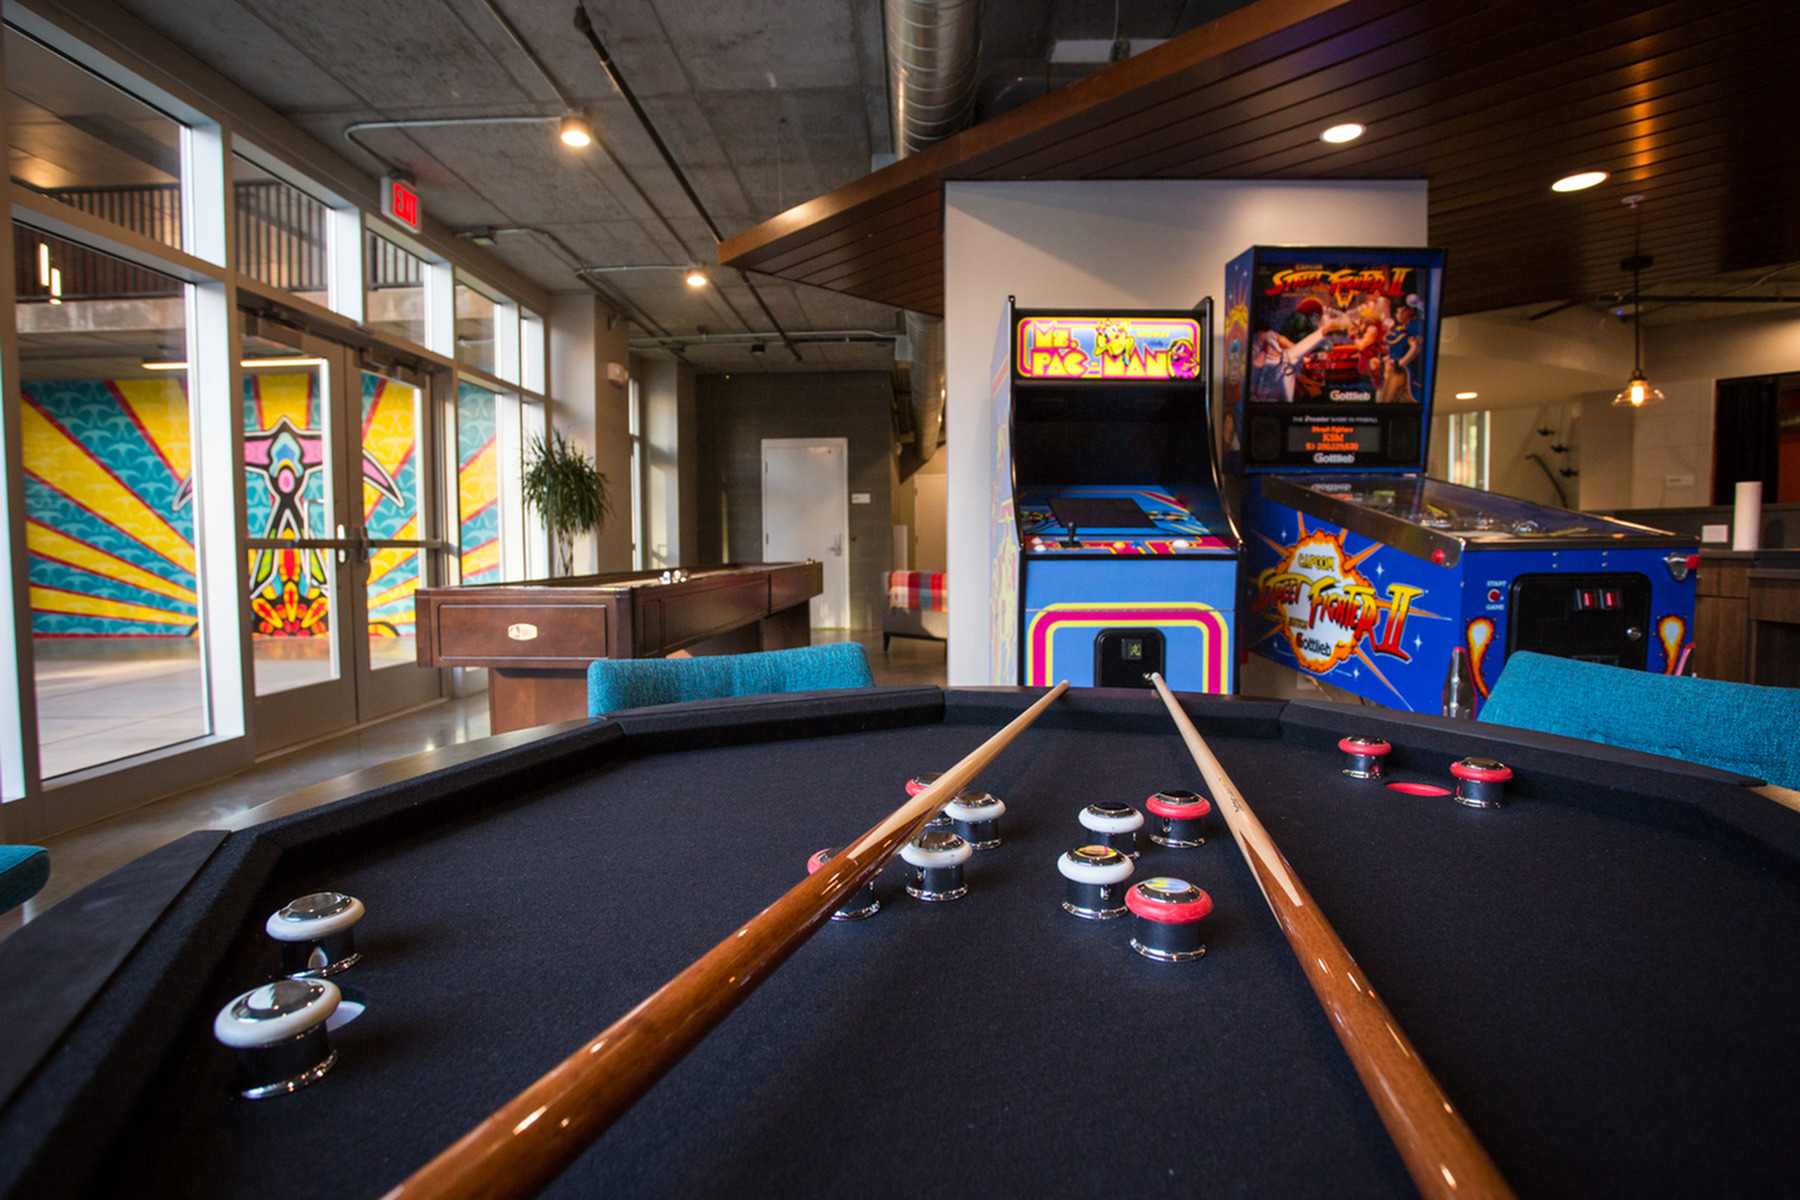 Image of Entertainment Bar with Shuffle Board Fooz Ball and Vintage Arcade Games for LIFT